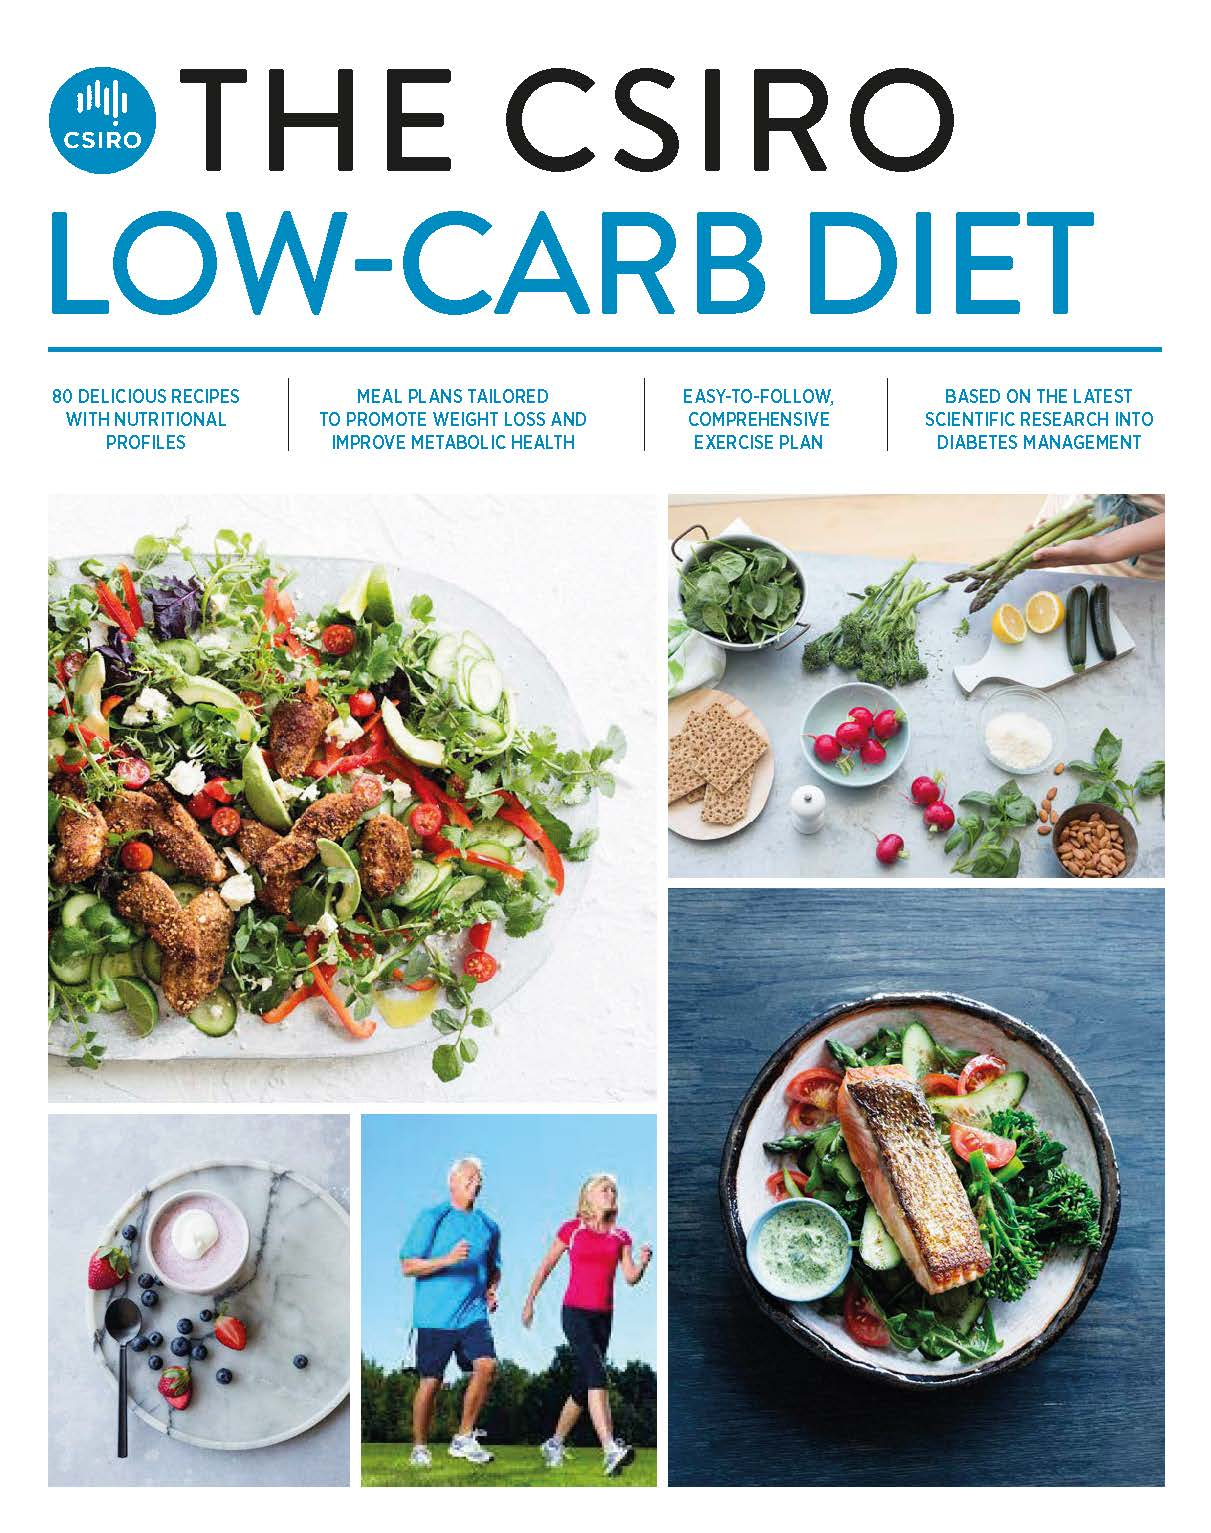 The CSIRO Low-Carb Diet by Grant Brinkworth, Pennie Taylor, ISBN: 9781925481488